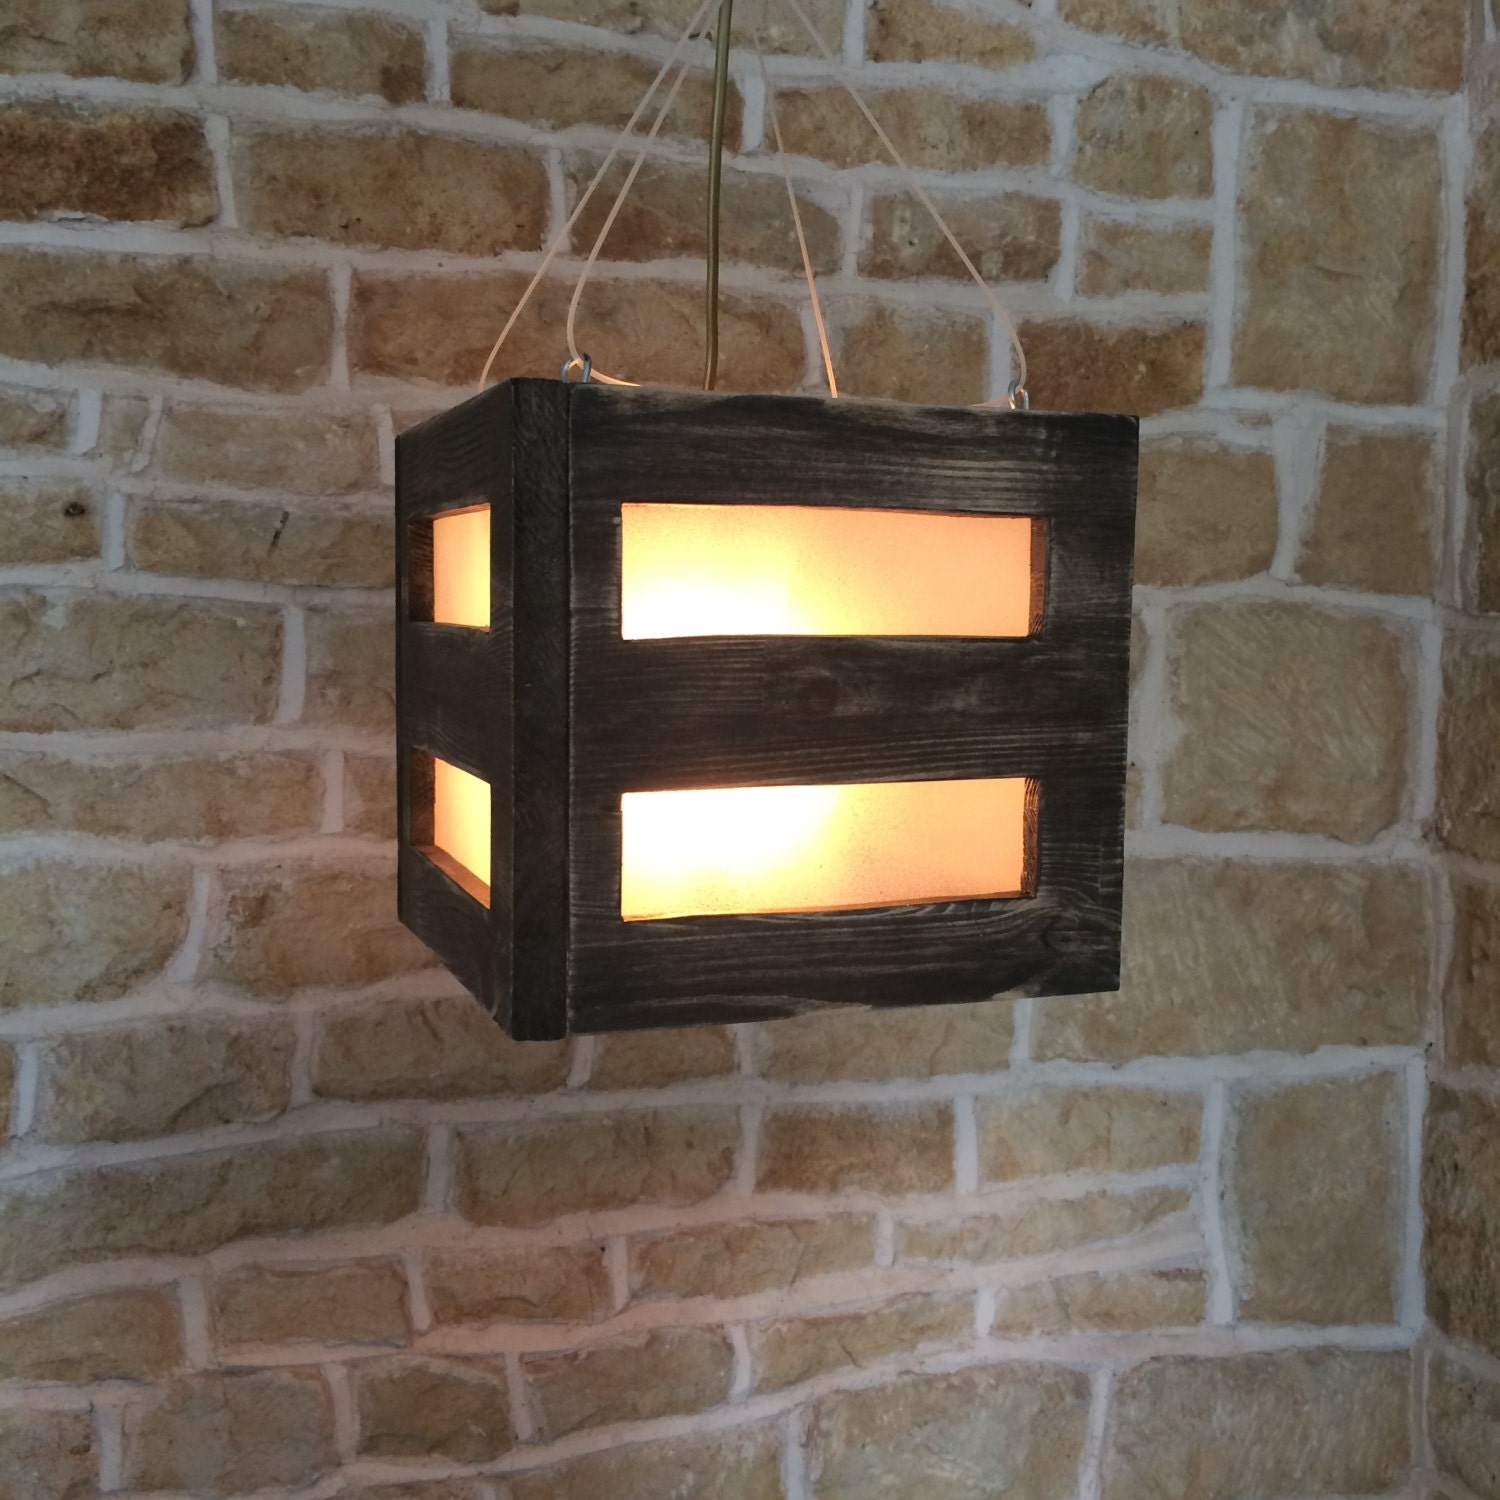 Unusual Rustic Wood Frosted Glass Square Cube Hanging Suspended ... for Square Wood Lamp Shade  585ifm